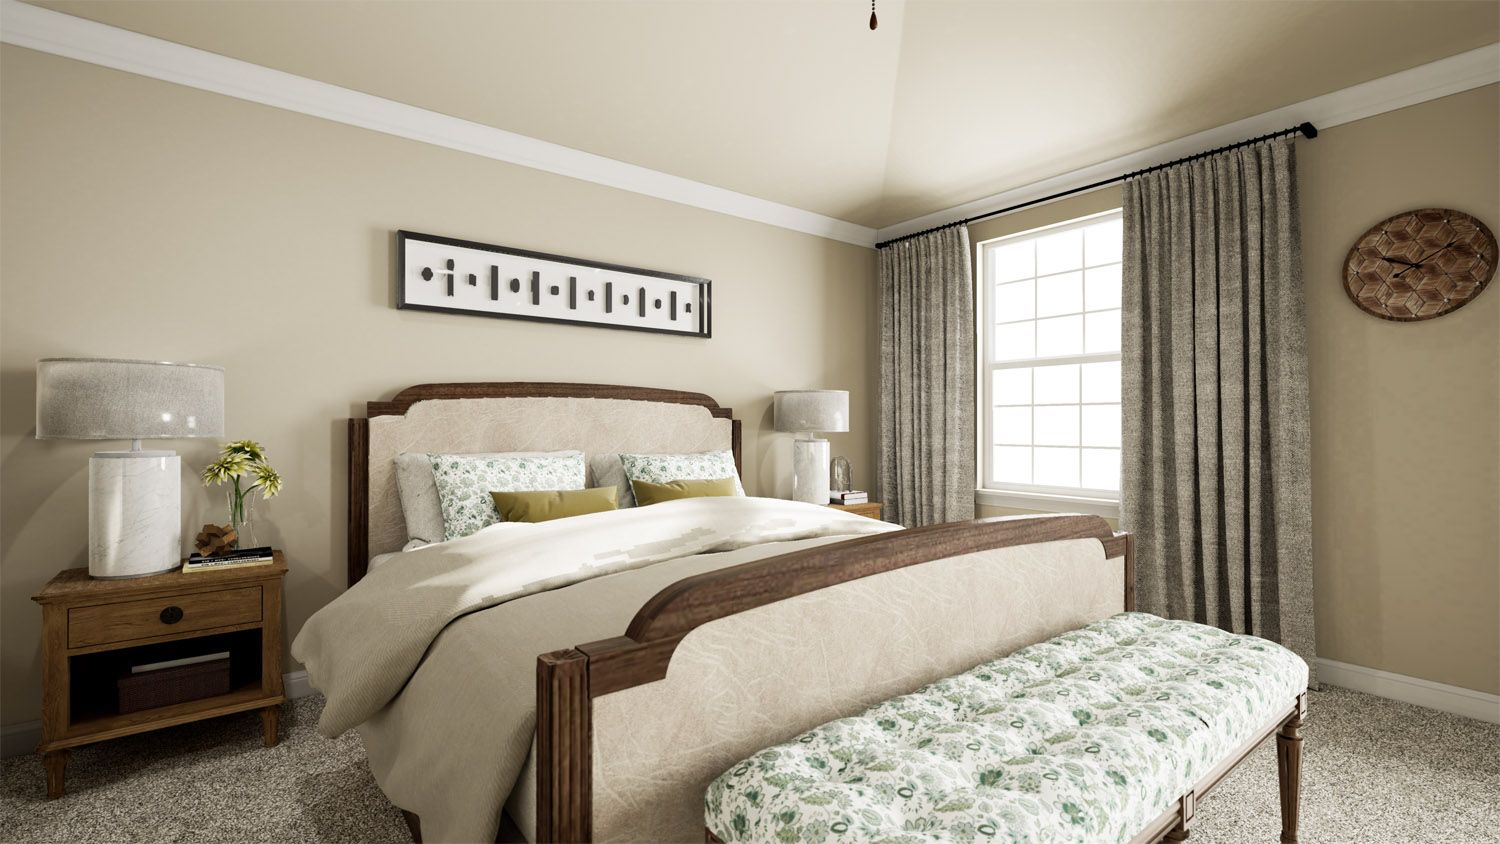 Bedroom featured in the 3000 Series By Schuber Mitchell Homes in Joplin, MO